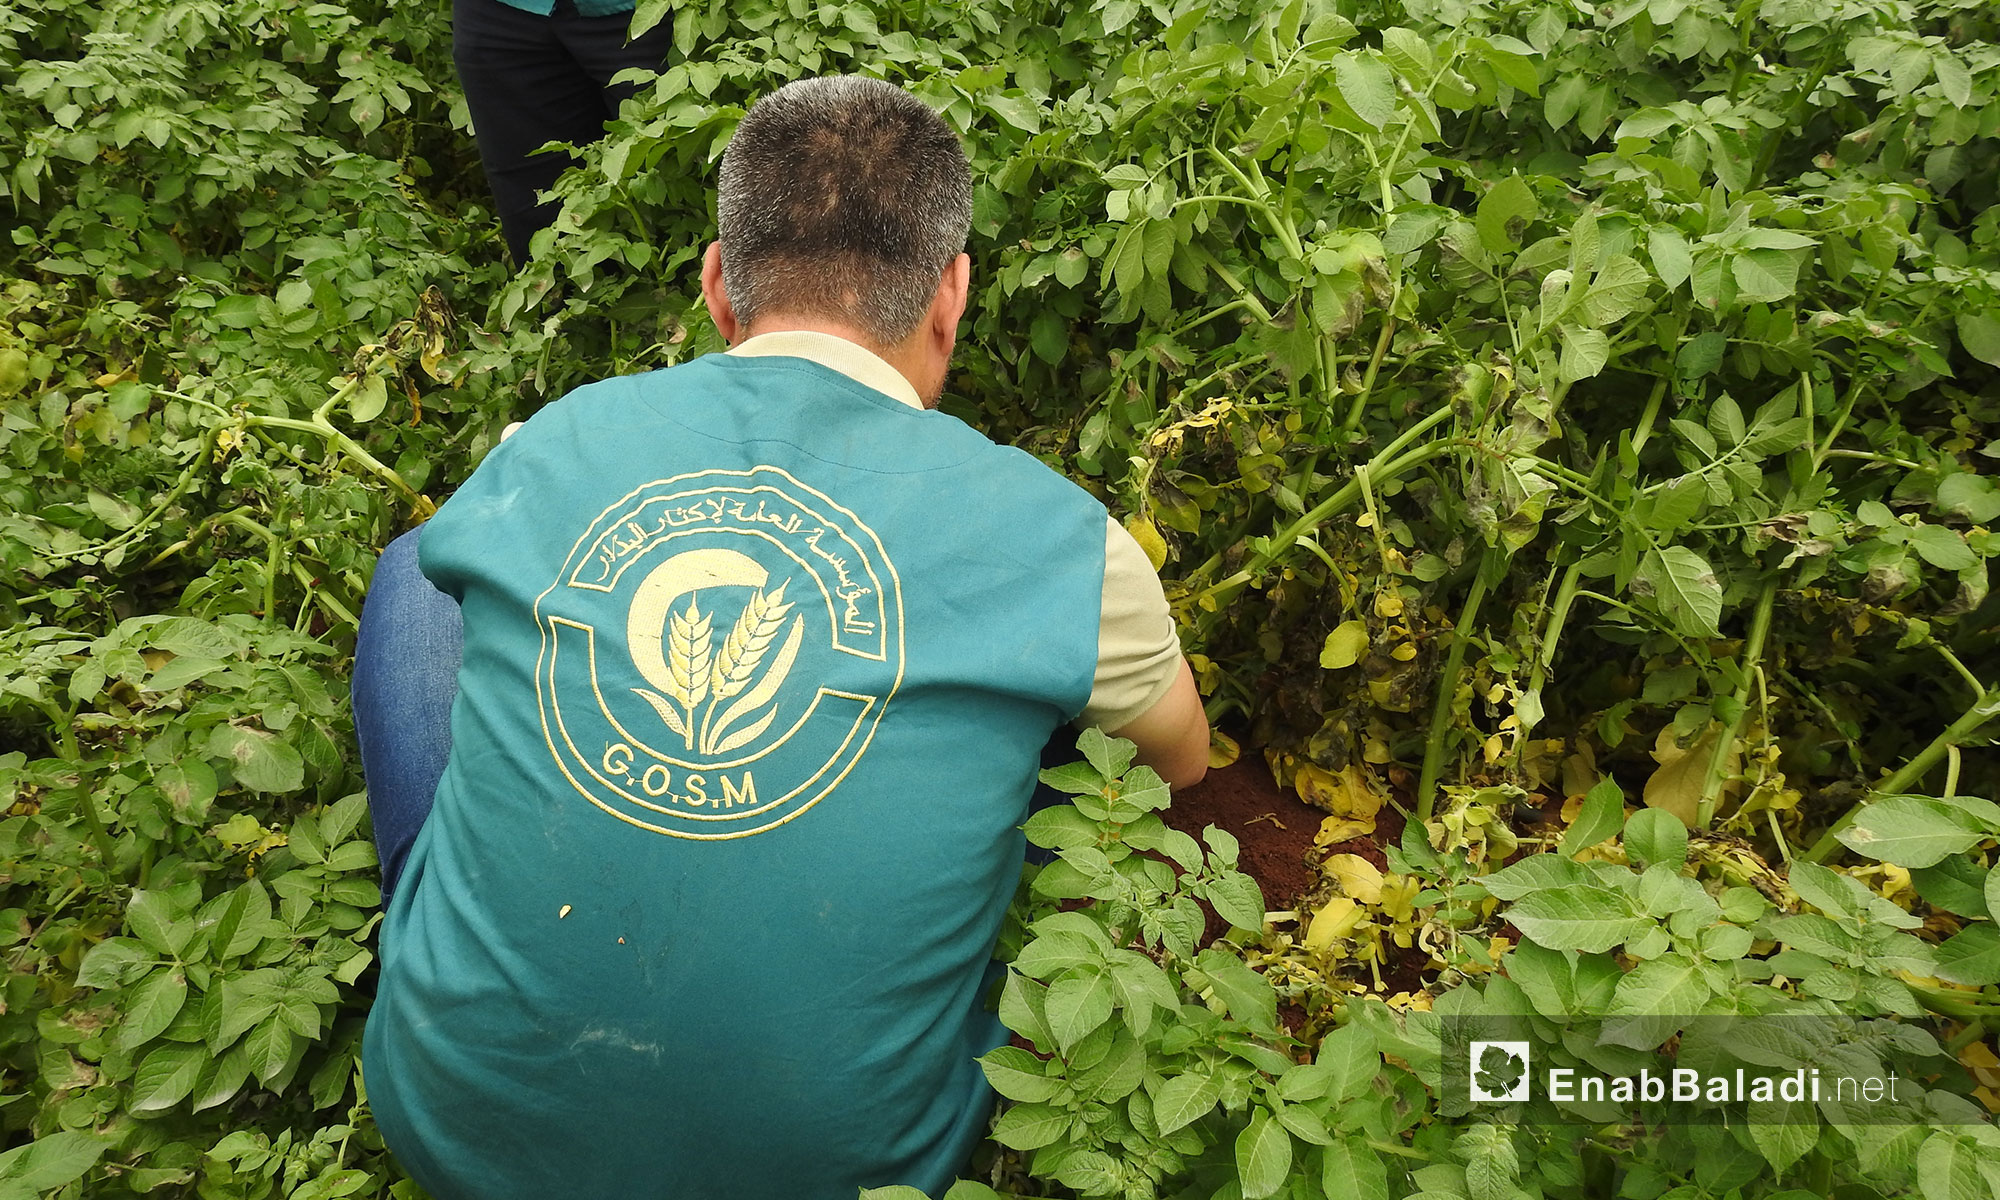 A project by the General Organization for Seed Multiplication in the northern countryside of Aleppo – May 18, 2018 (Enab Baladi)